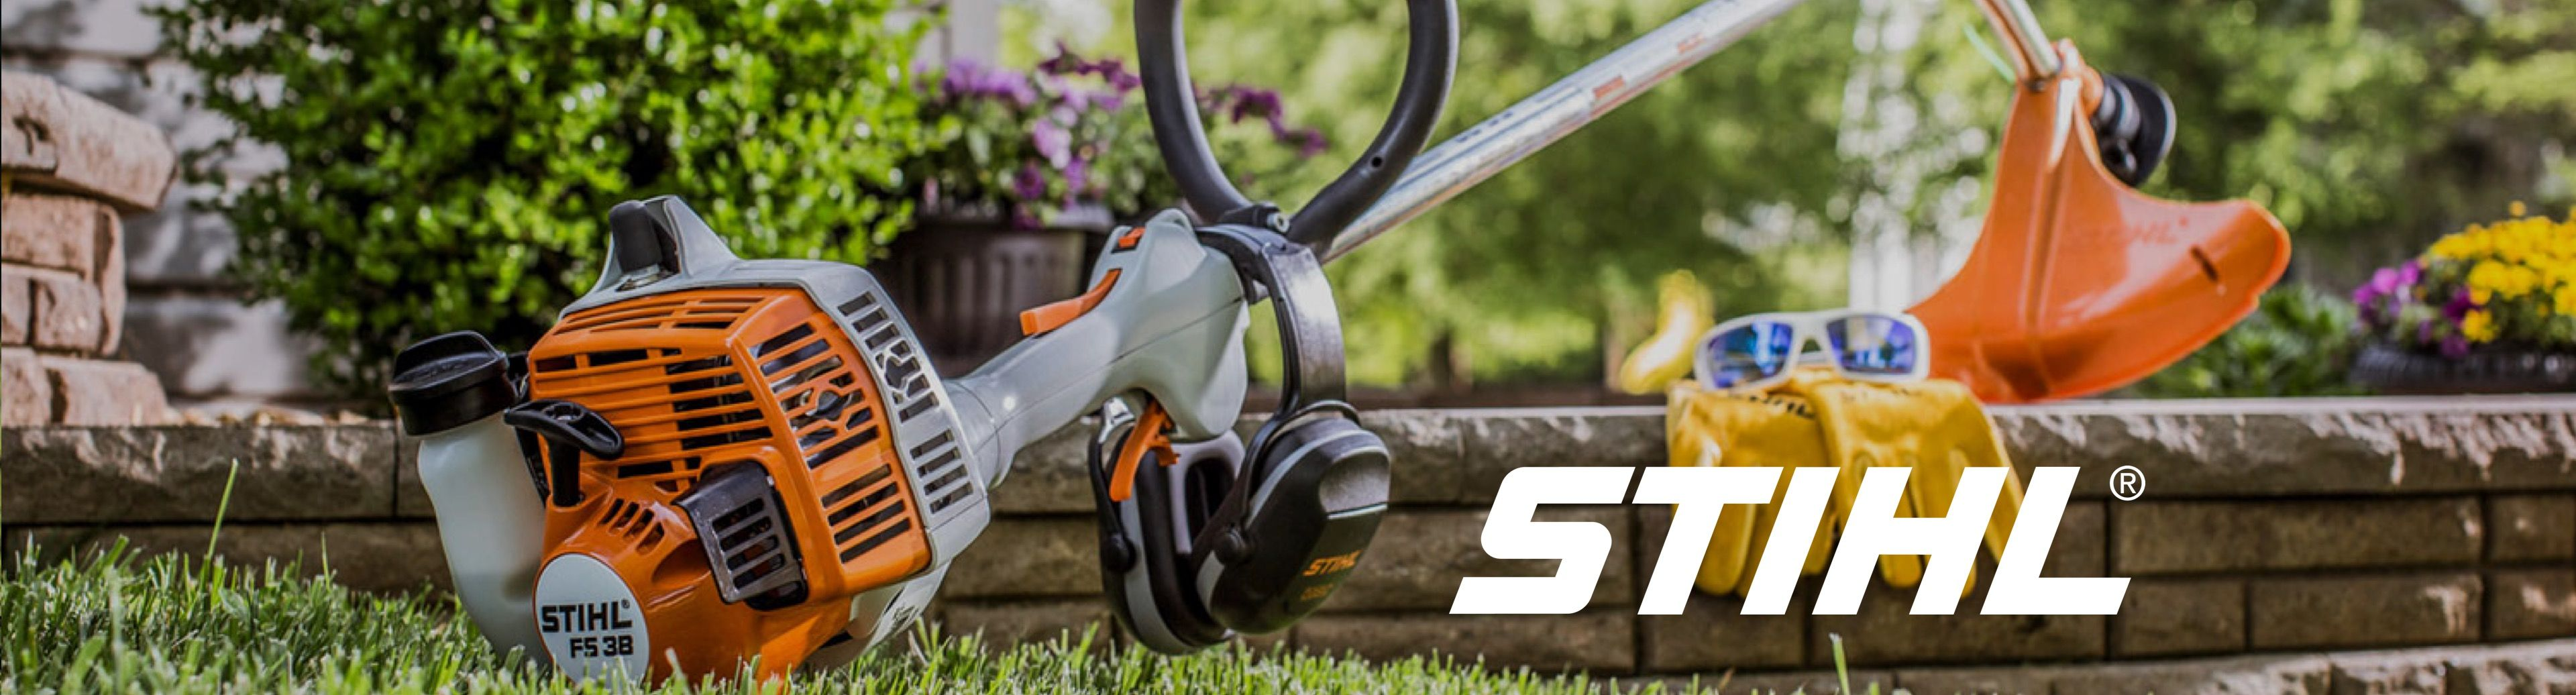 Stihl weed eater with gloves and sunglasses